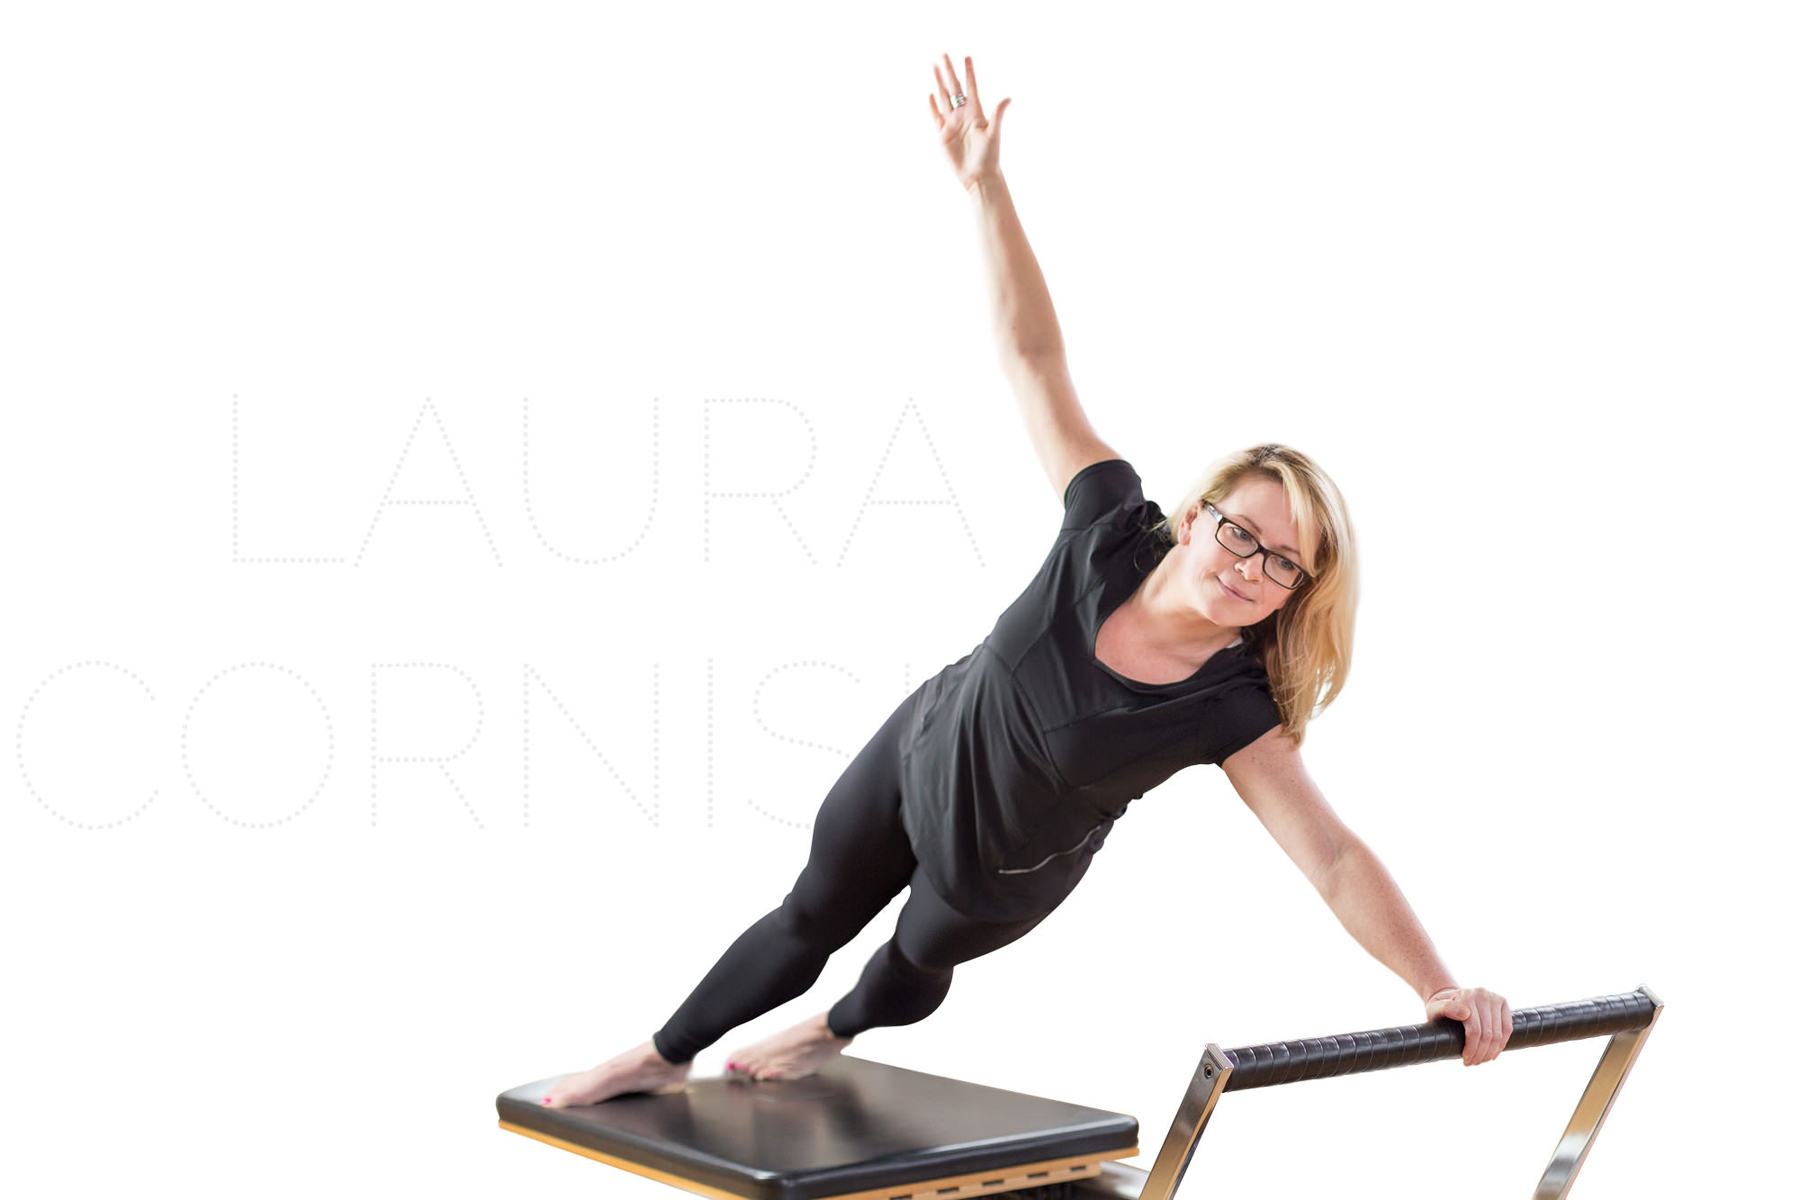 Laura Cornish is a Star on the Reformer